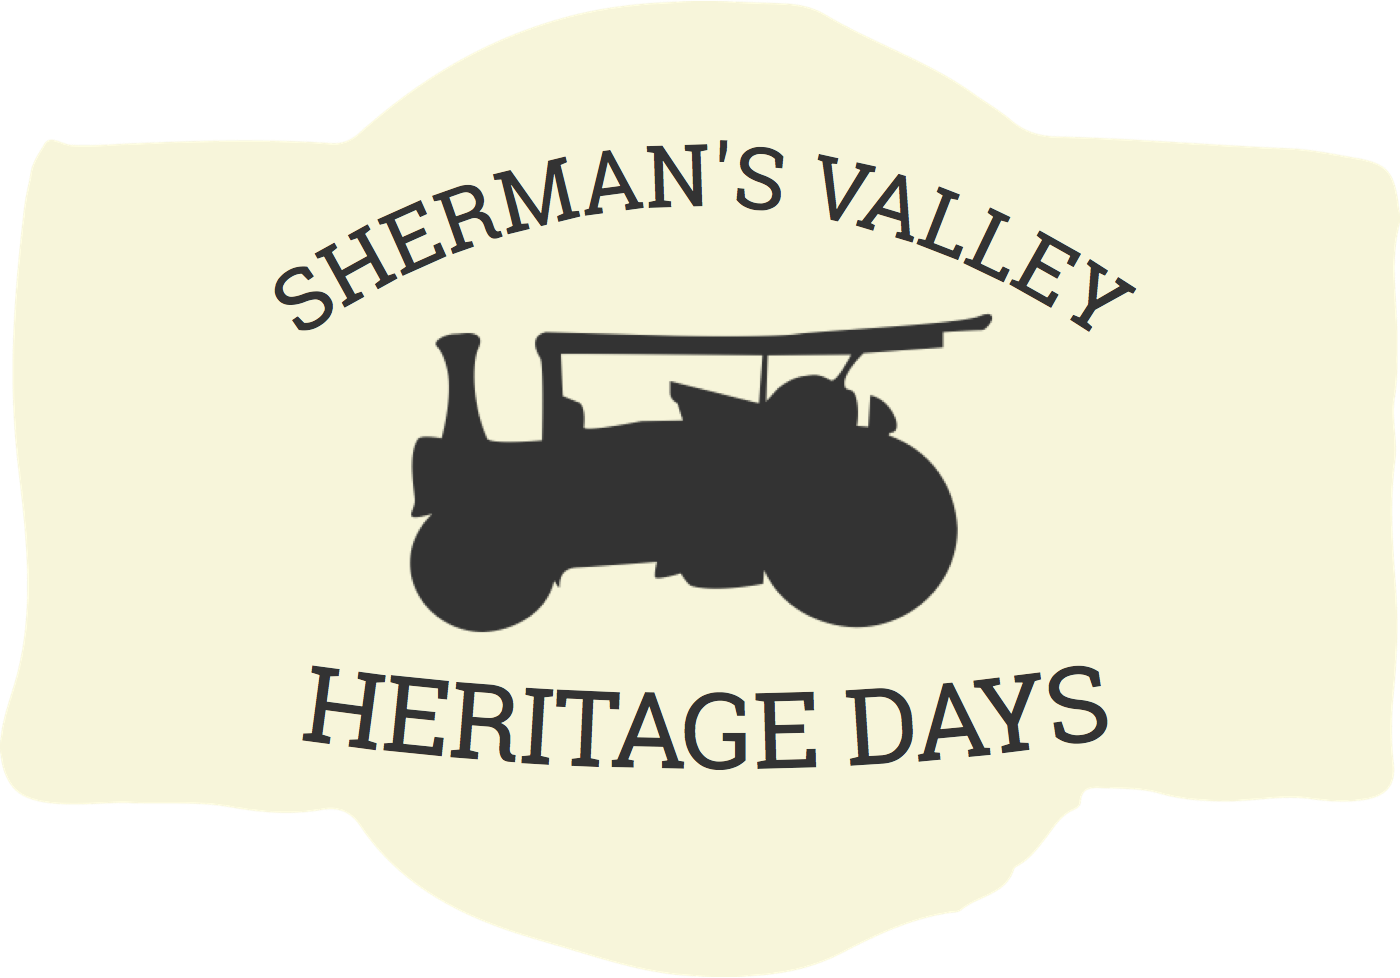 Sherman's Valley Heritage Days Logo